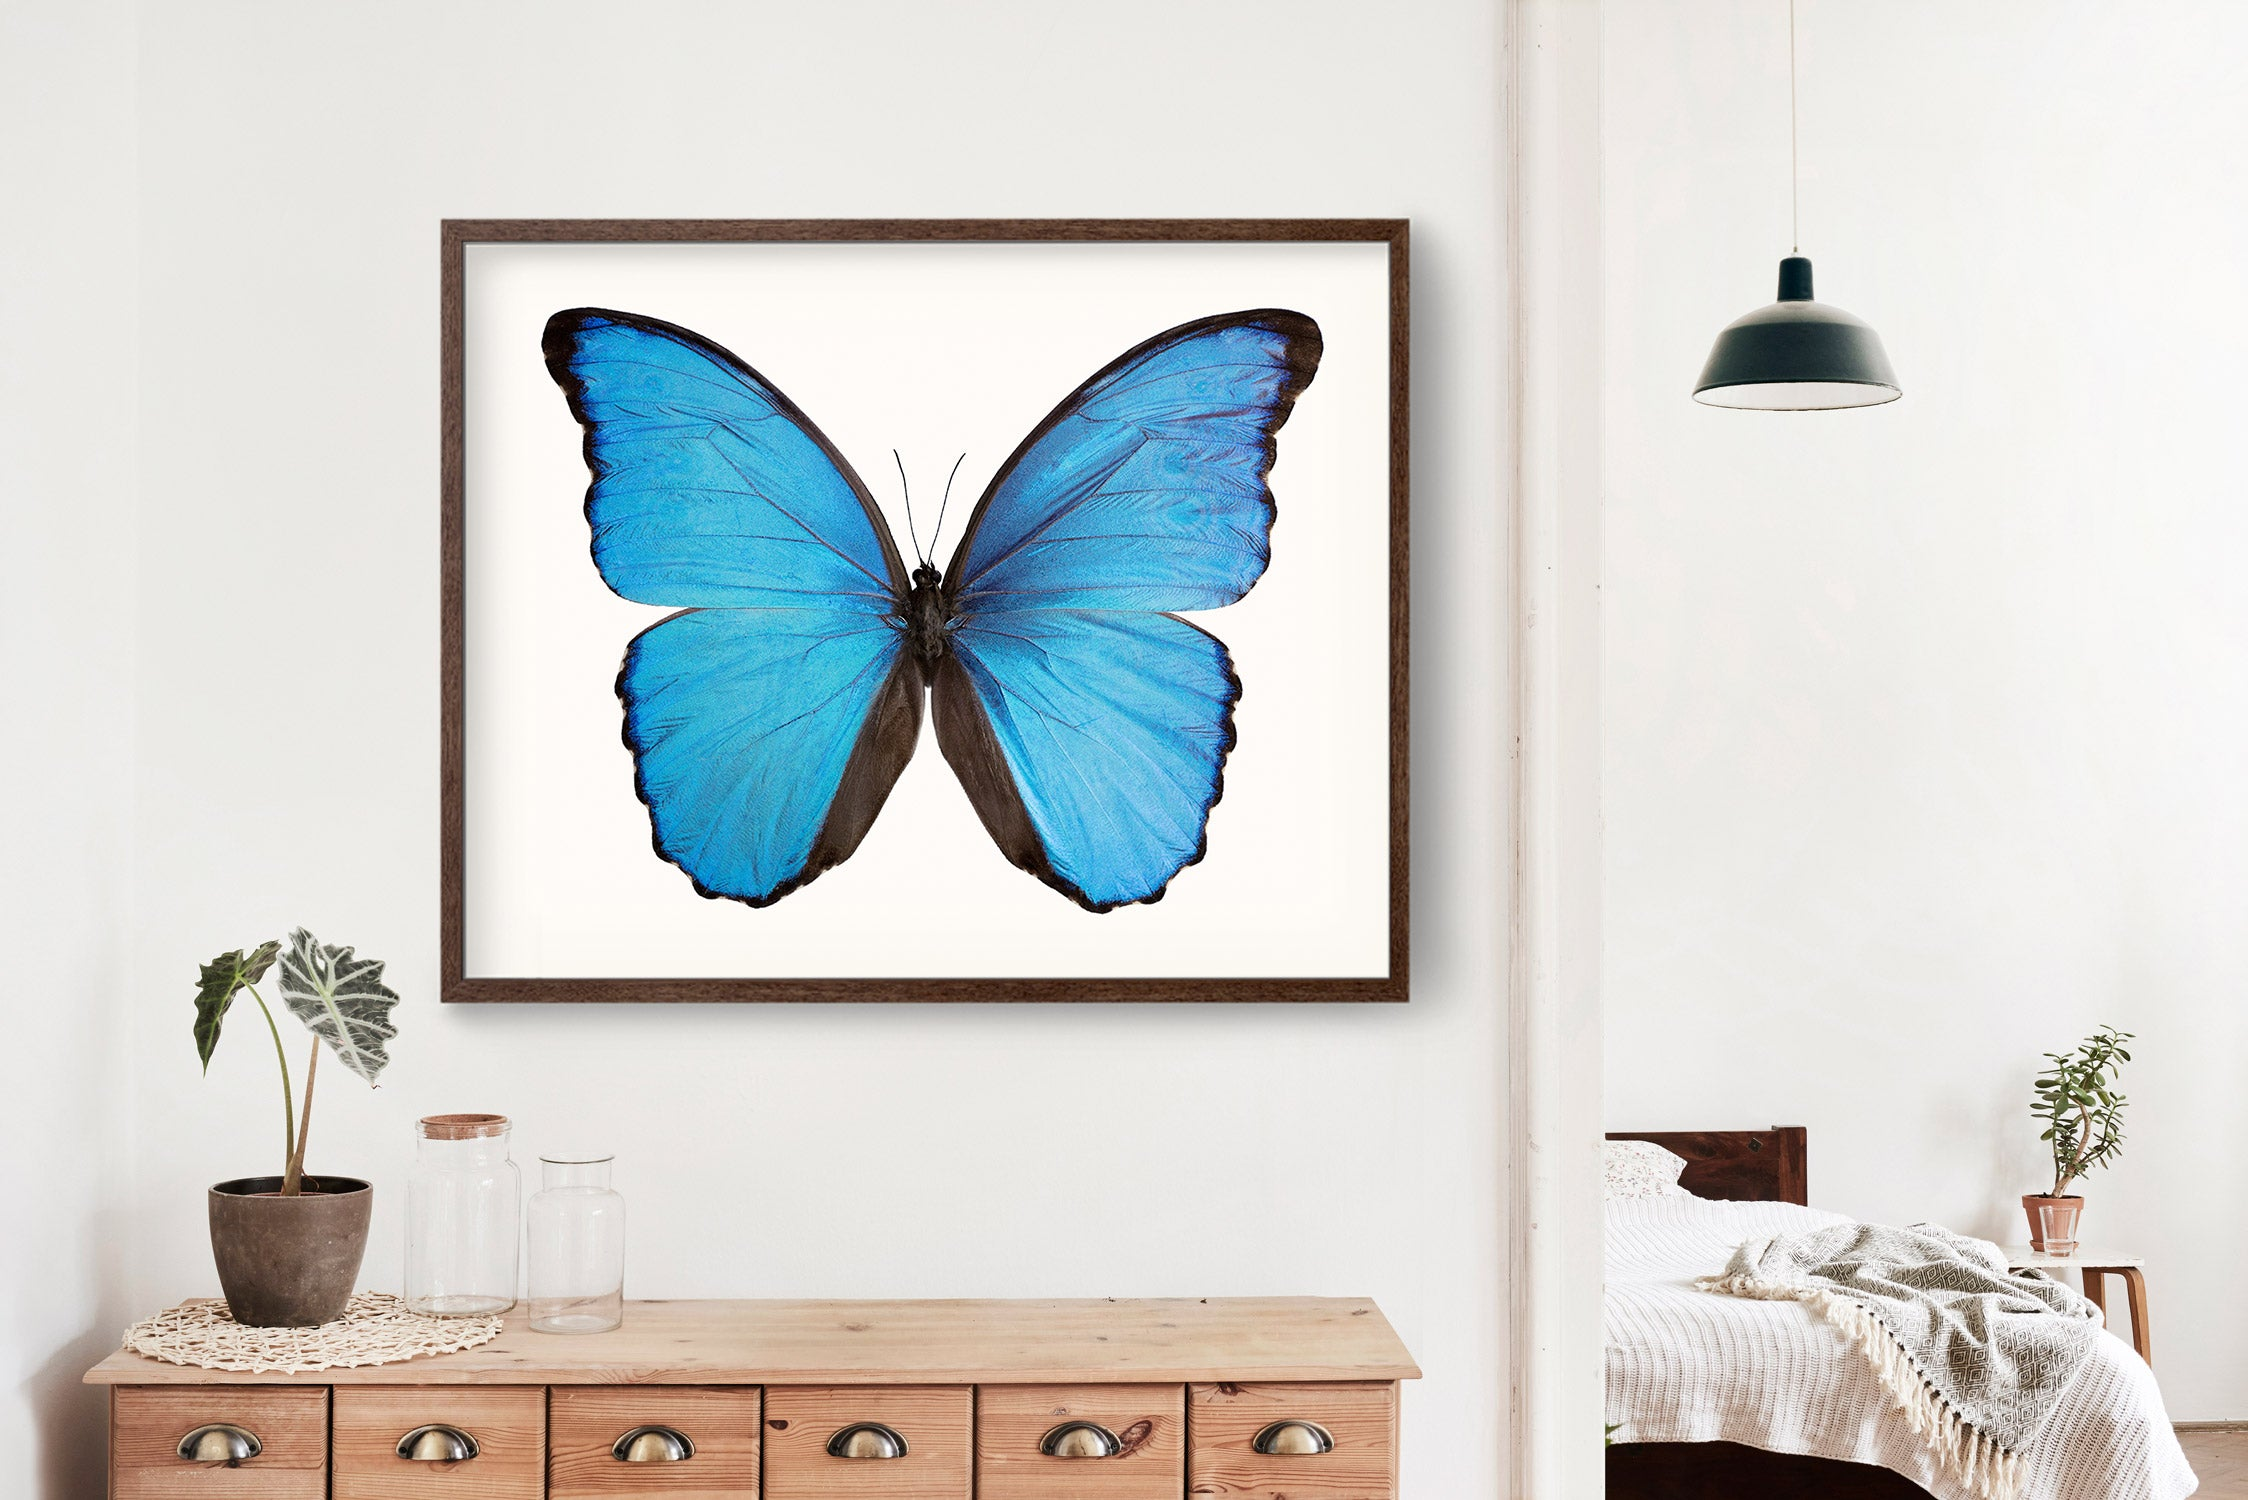 Butterfly No. 17 - the Blue Morpho Butterfly